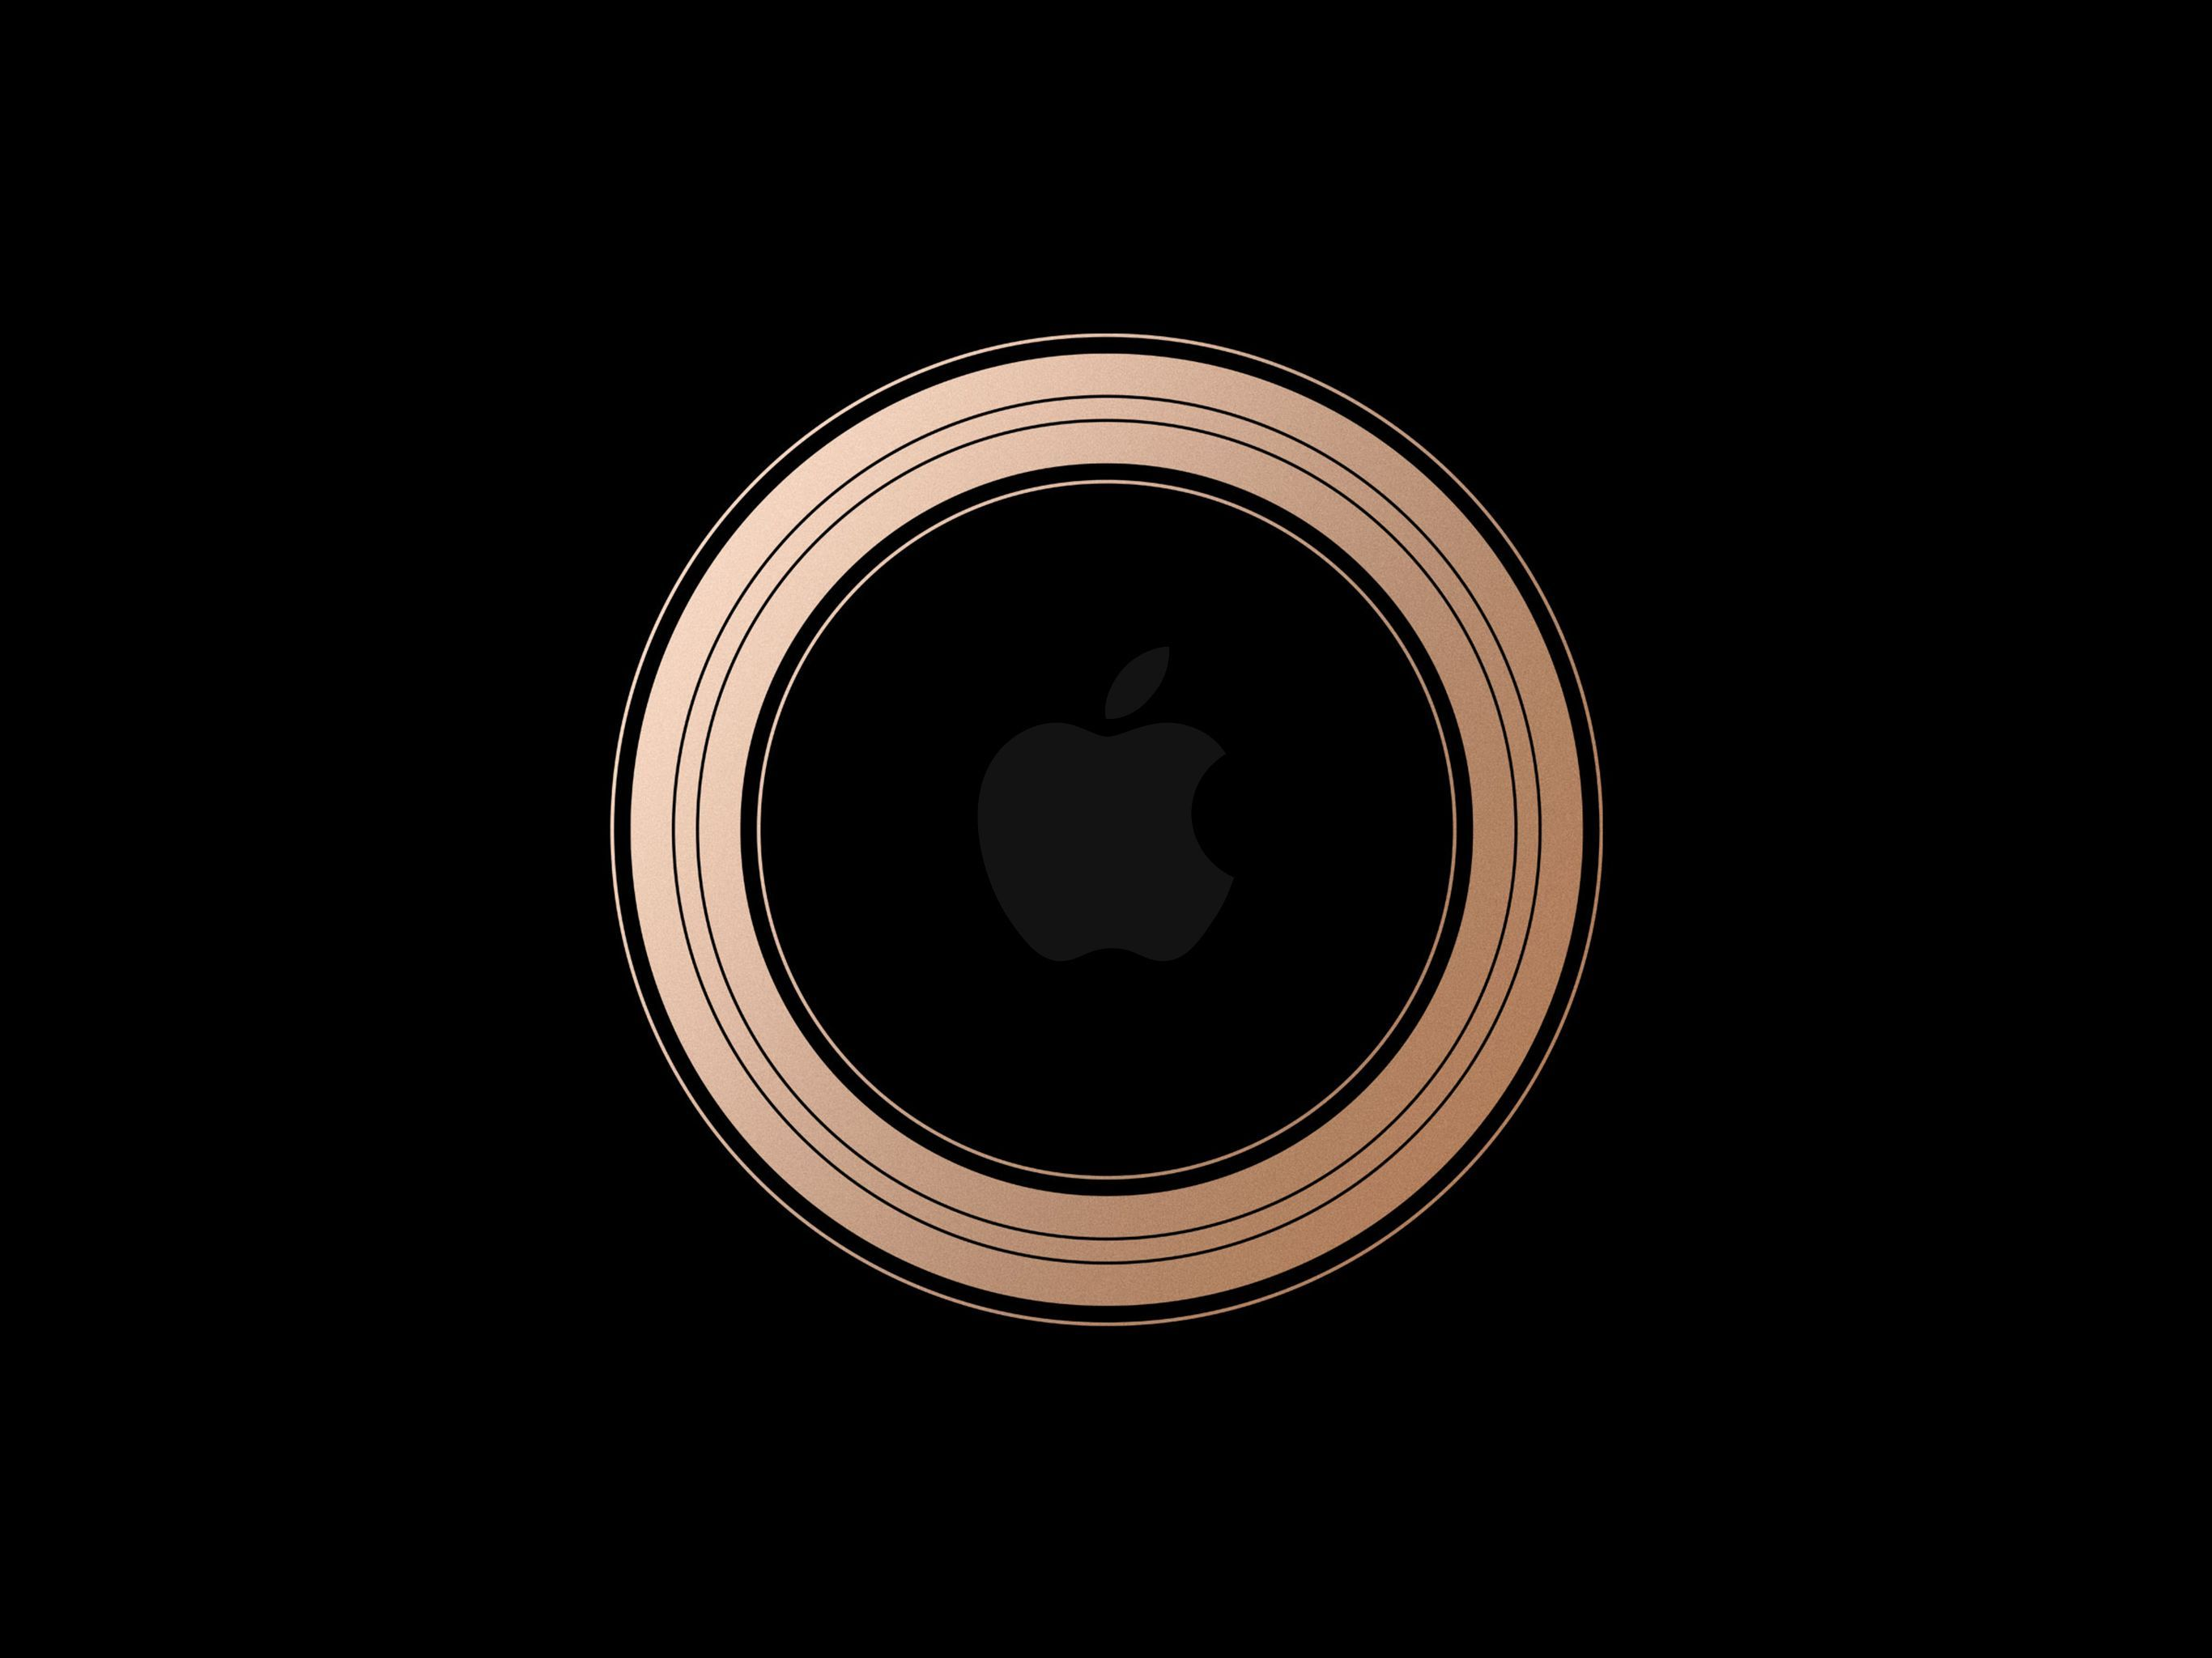 2732x2048 Gather round Apple event wallpapers | Apple Watch Wallpapers ...